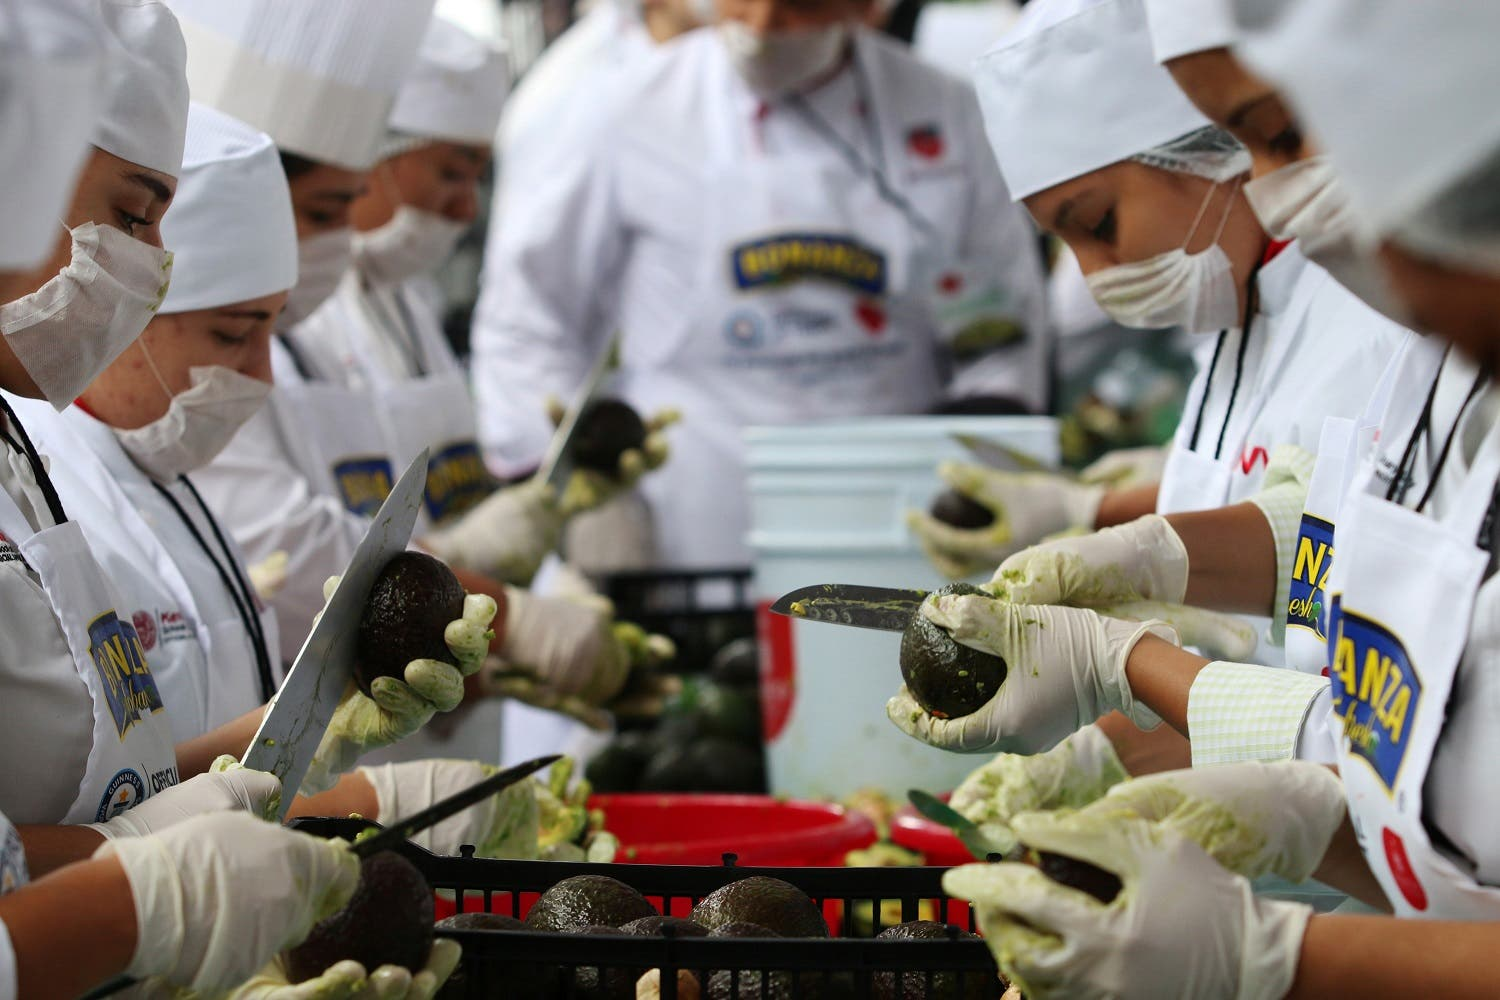 Volunteers from a culinary school cut avocados as they attempt to set a new Guinness World Record for the largest serving of guacamole in Concepcion de Buenos Aires, Jalisco, Mexico September 3, 2017. REUTERS